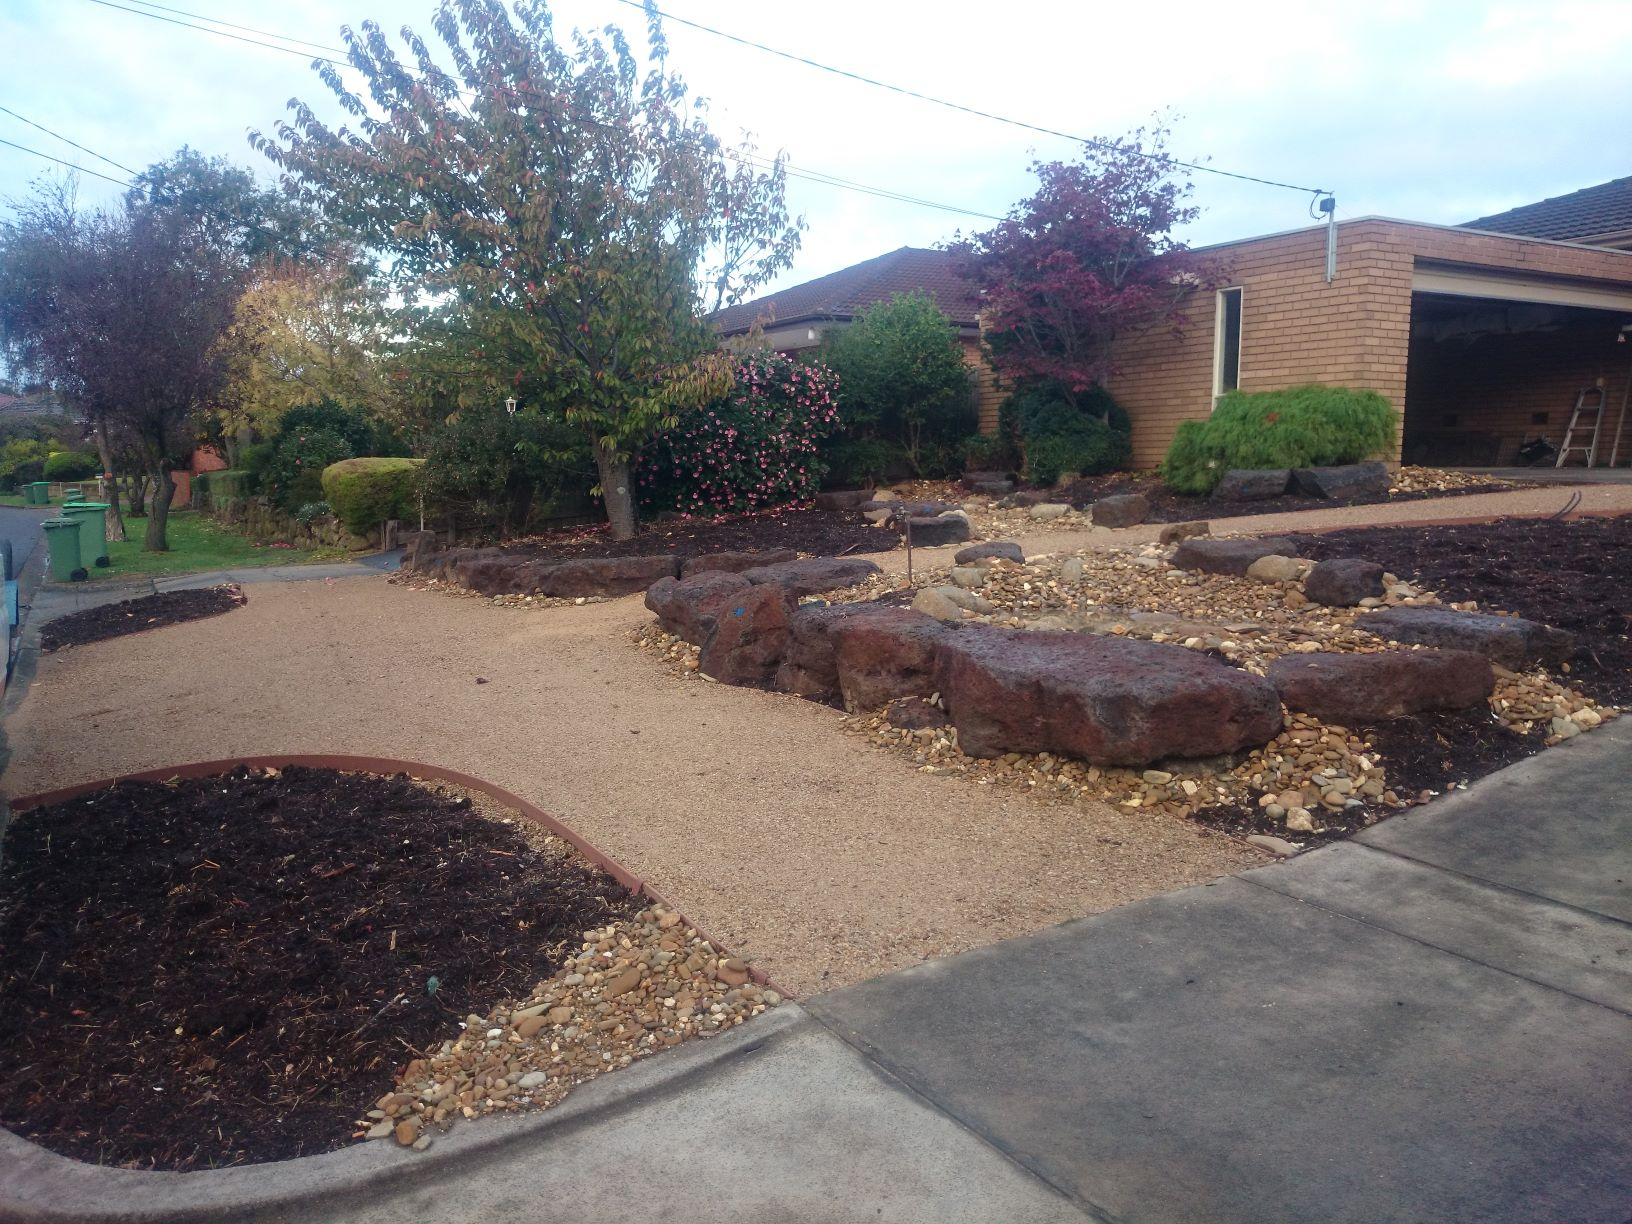 Colac rock for retaining, compacted crushed sandstone, River stones.